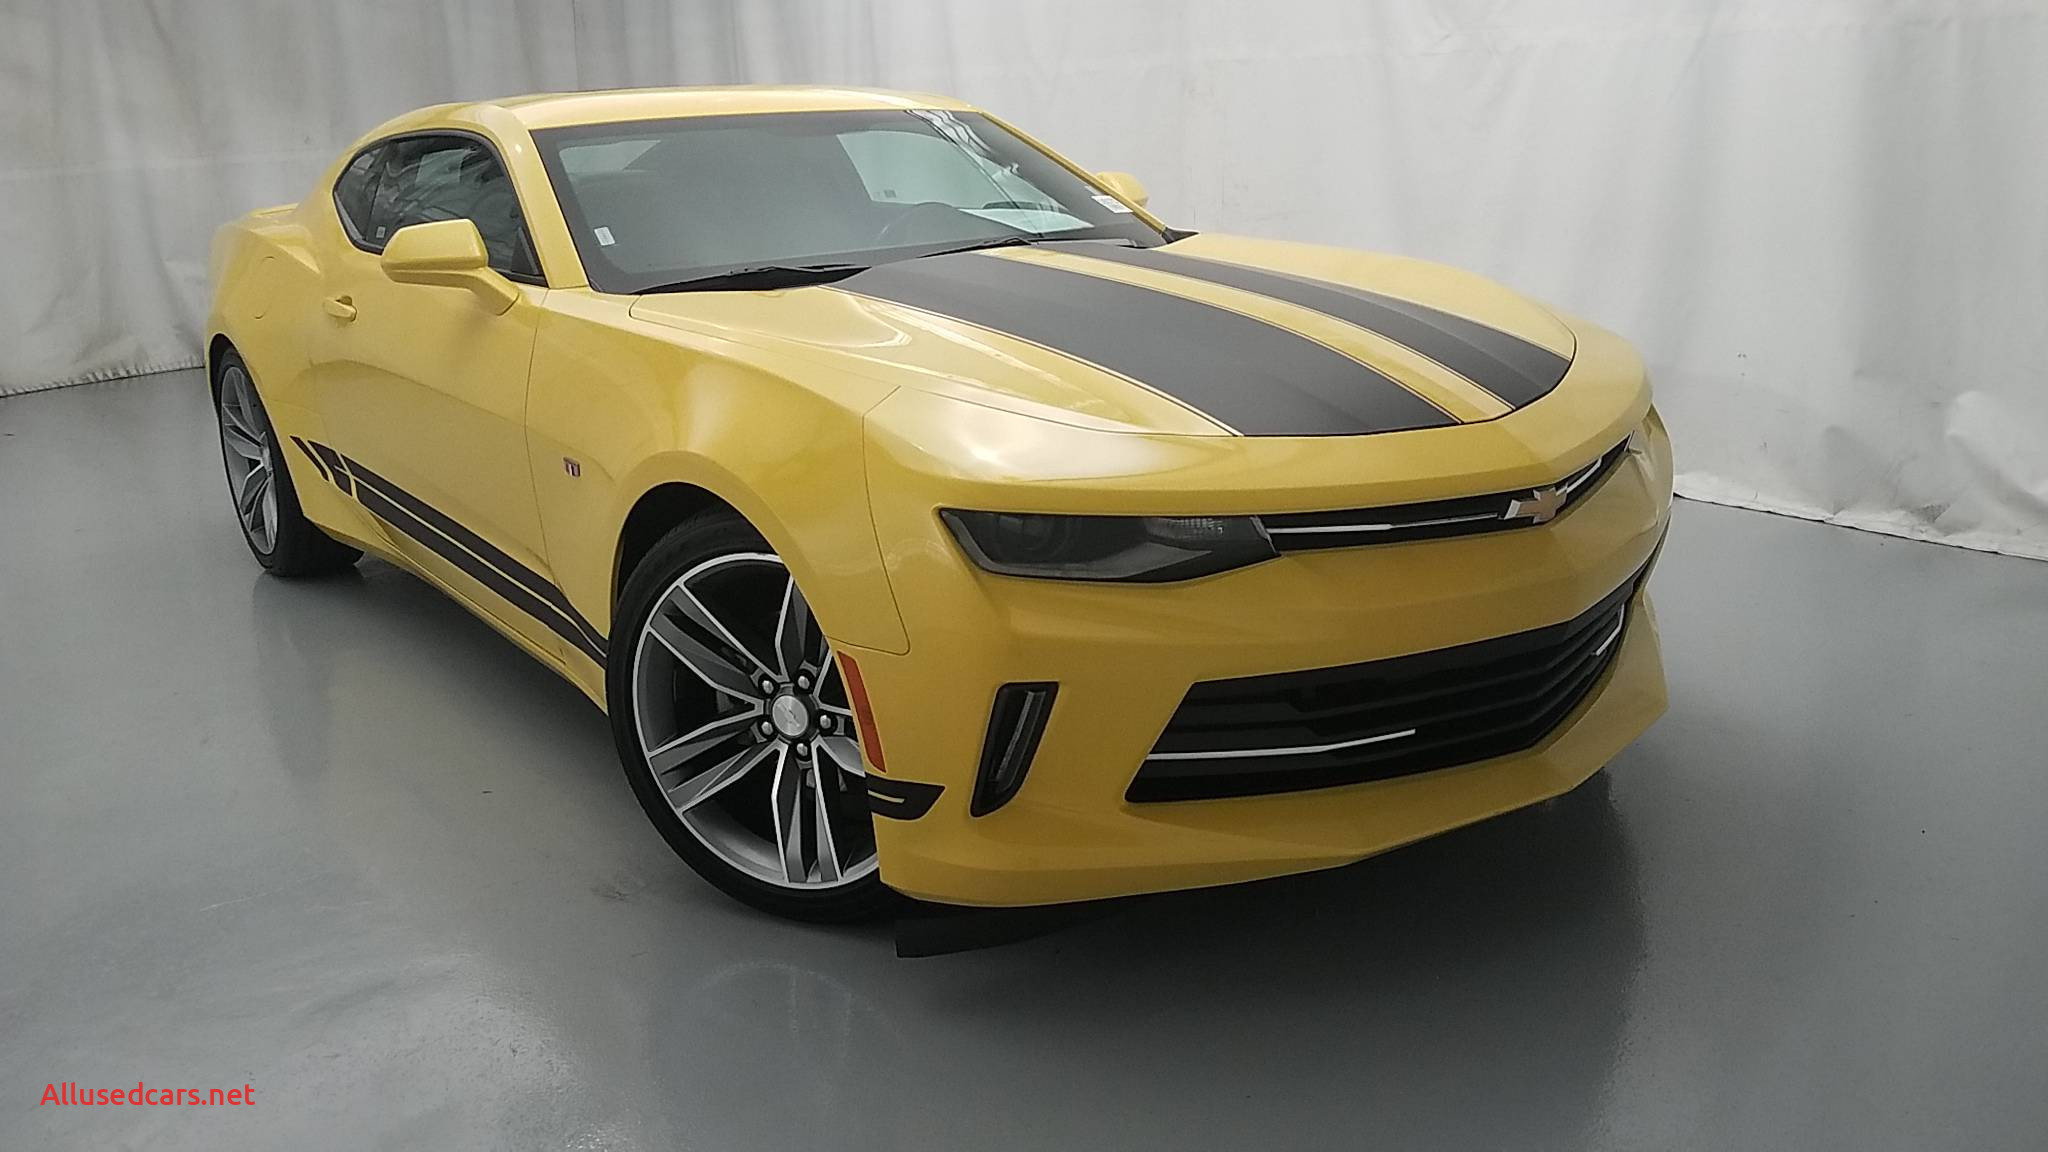 Awesome Repossessed Cars for Sale Near Me Awesome Awesome Cars for Sale Near Me Under